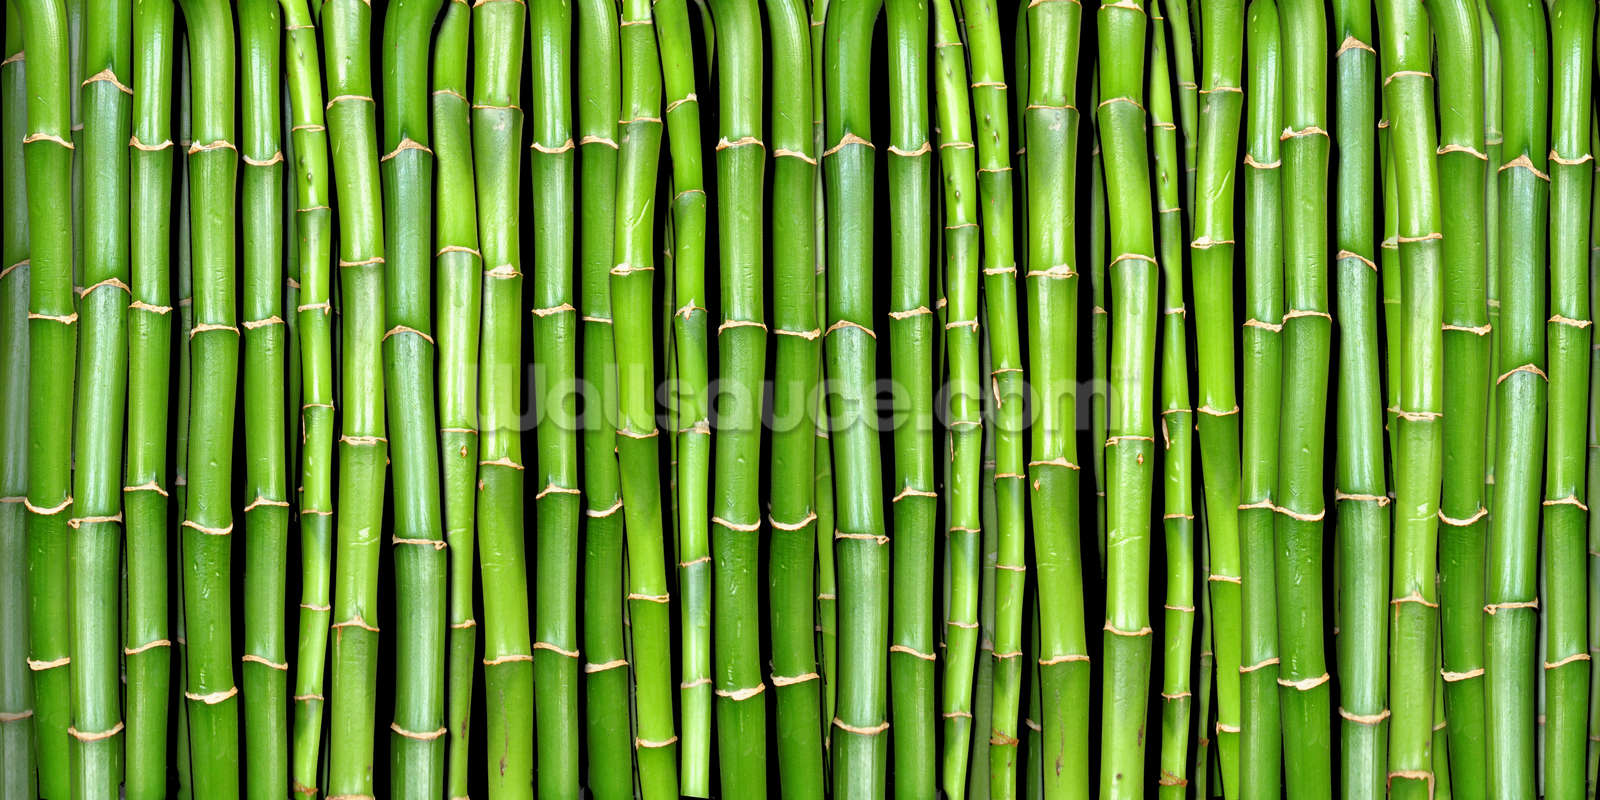 Bamboo wallpaper wall mural wallsauce usa for Bamboo mural wallpaper